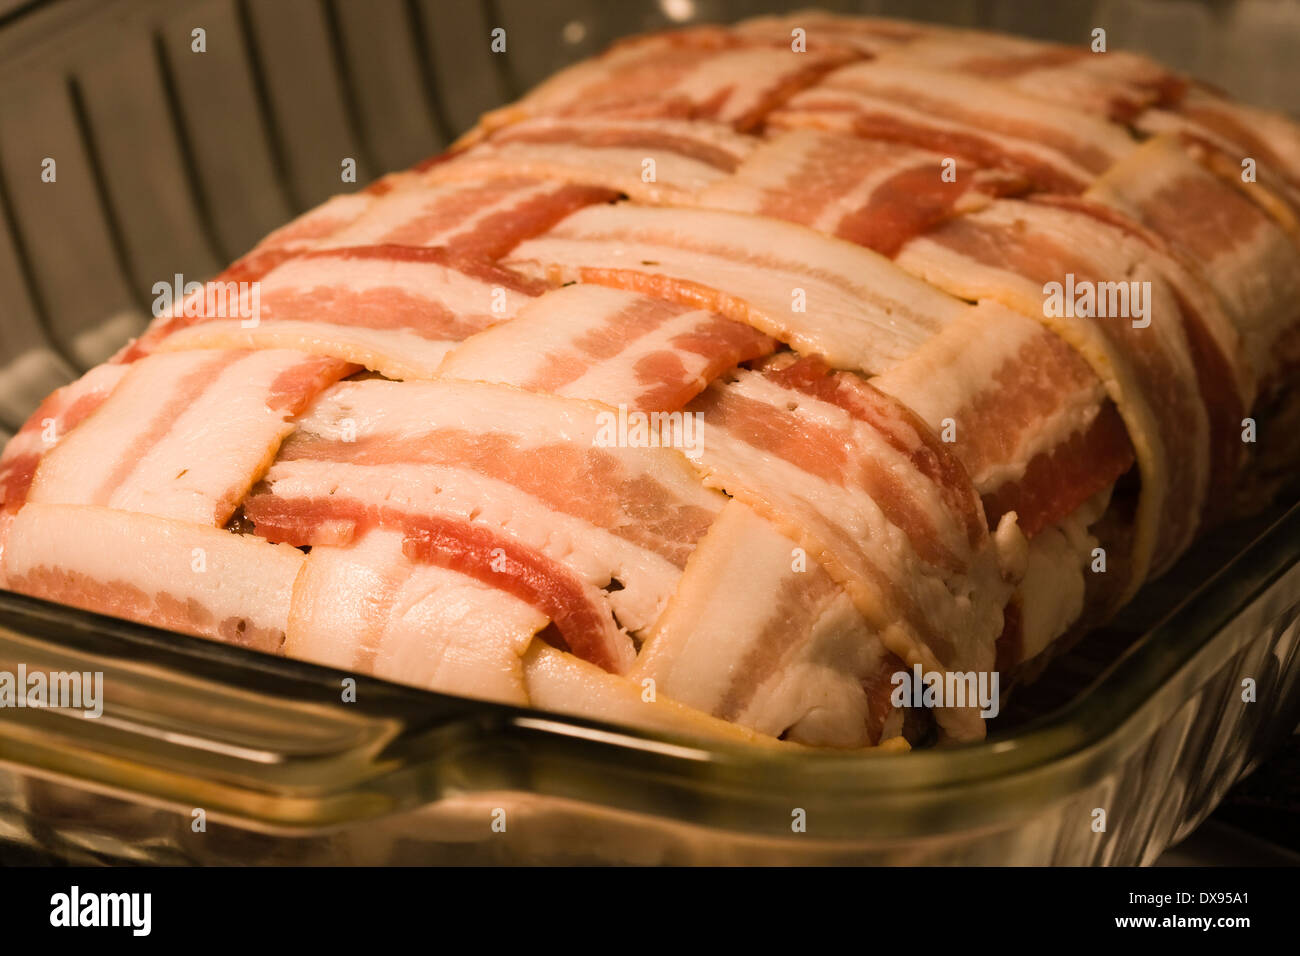 Uncooked Meatloaf wrapped with bacon in a basket weave pattern sitting in a clear Pyrex baking dish on a kitchen stovetop - Stock Image